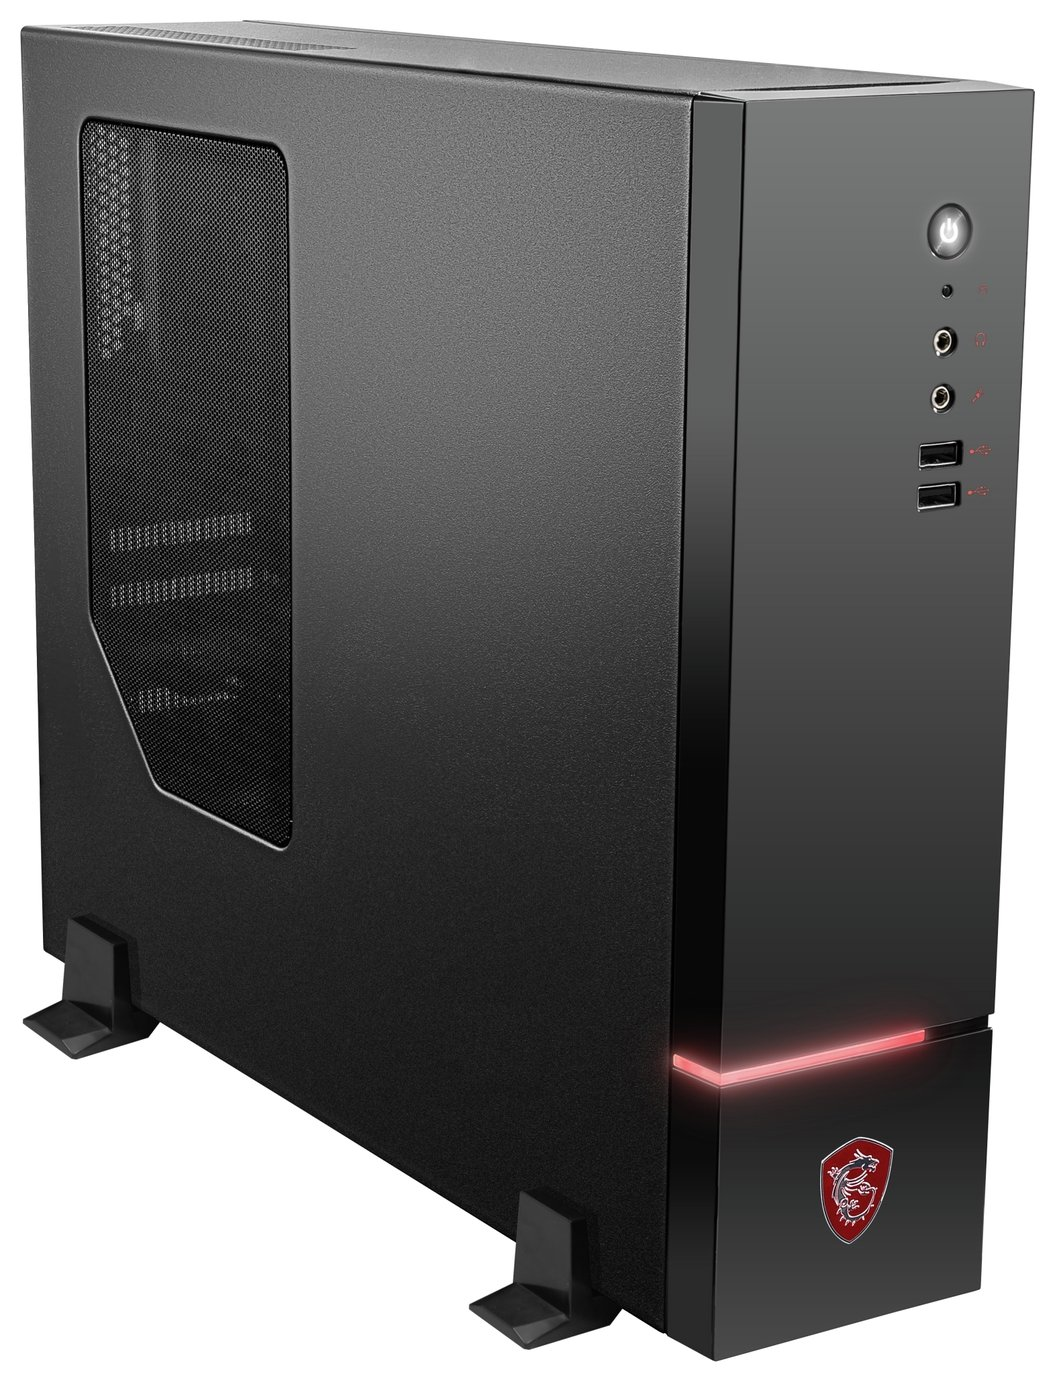 MSI Codex S i5 8GB 1TB 128GB GTC1050Ti Gaming PC